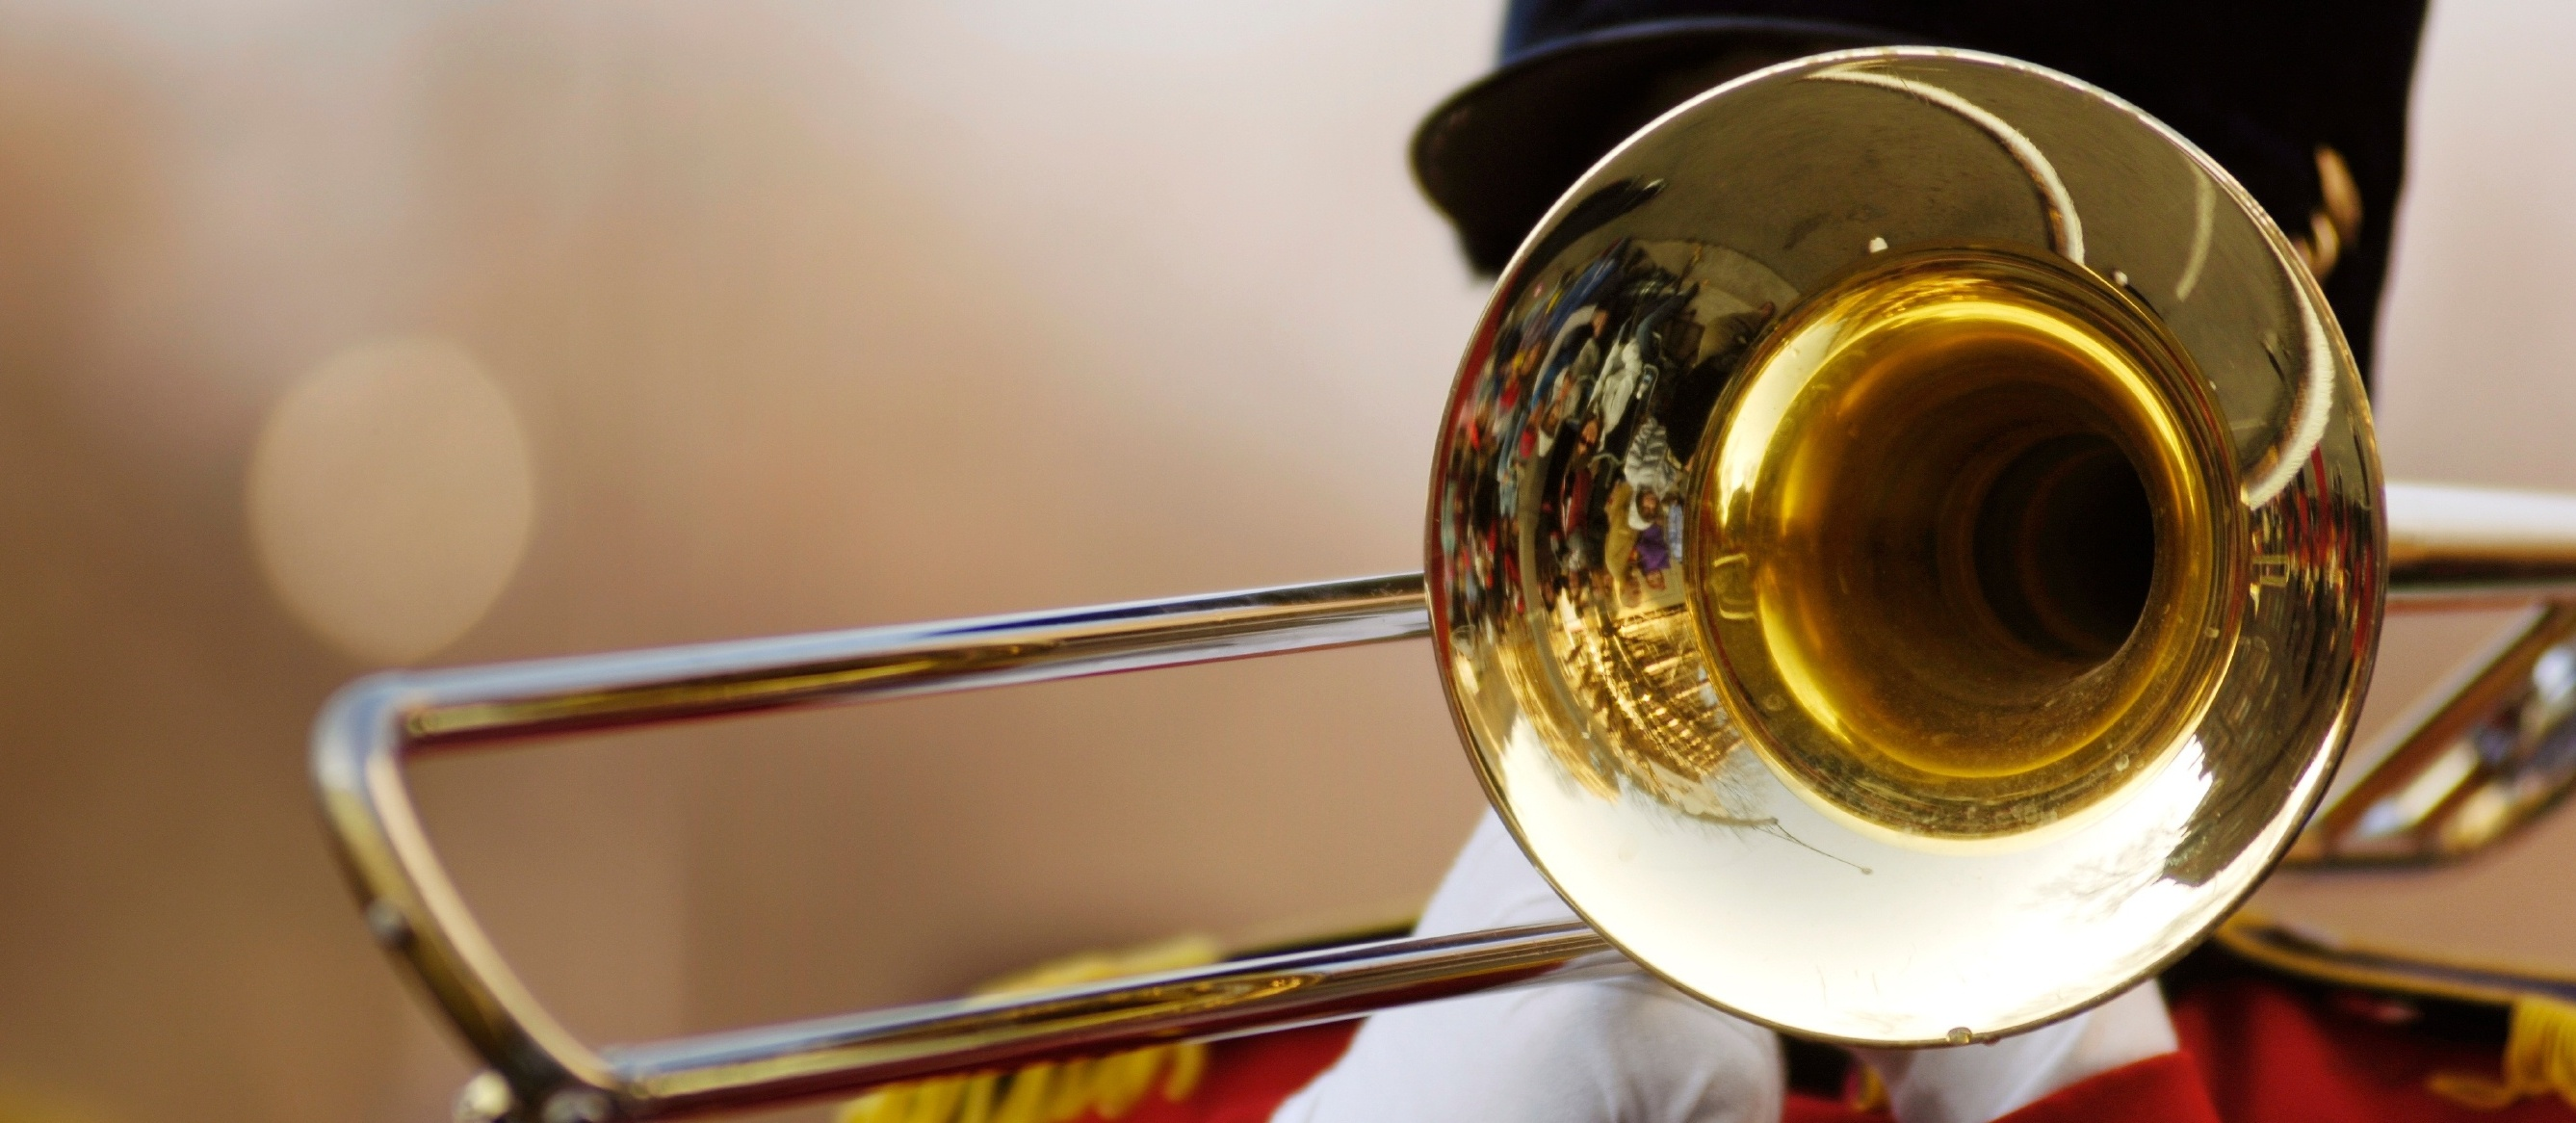 trombone player in a marching band